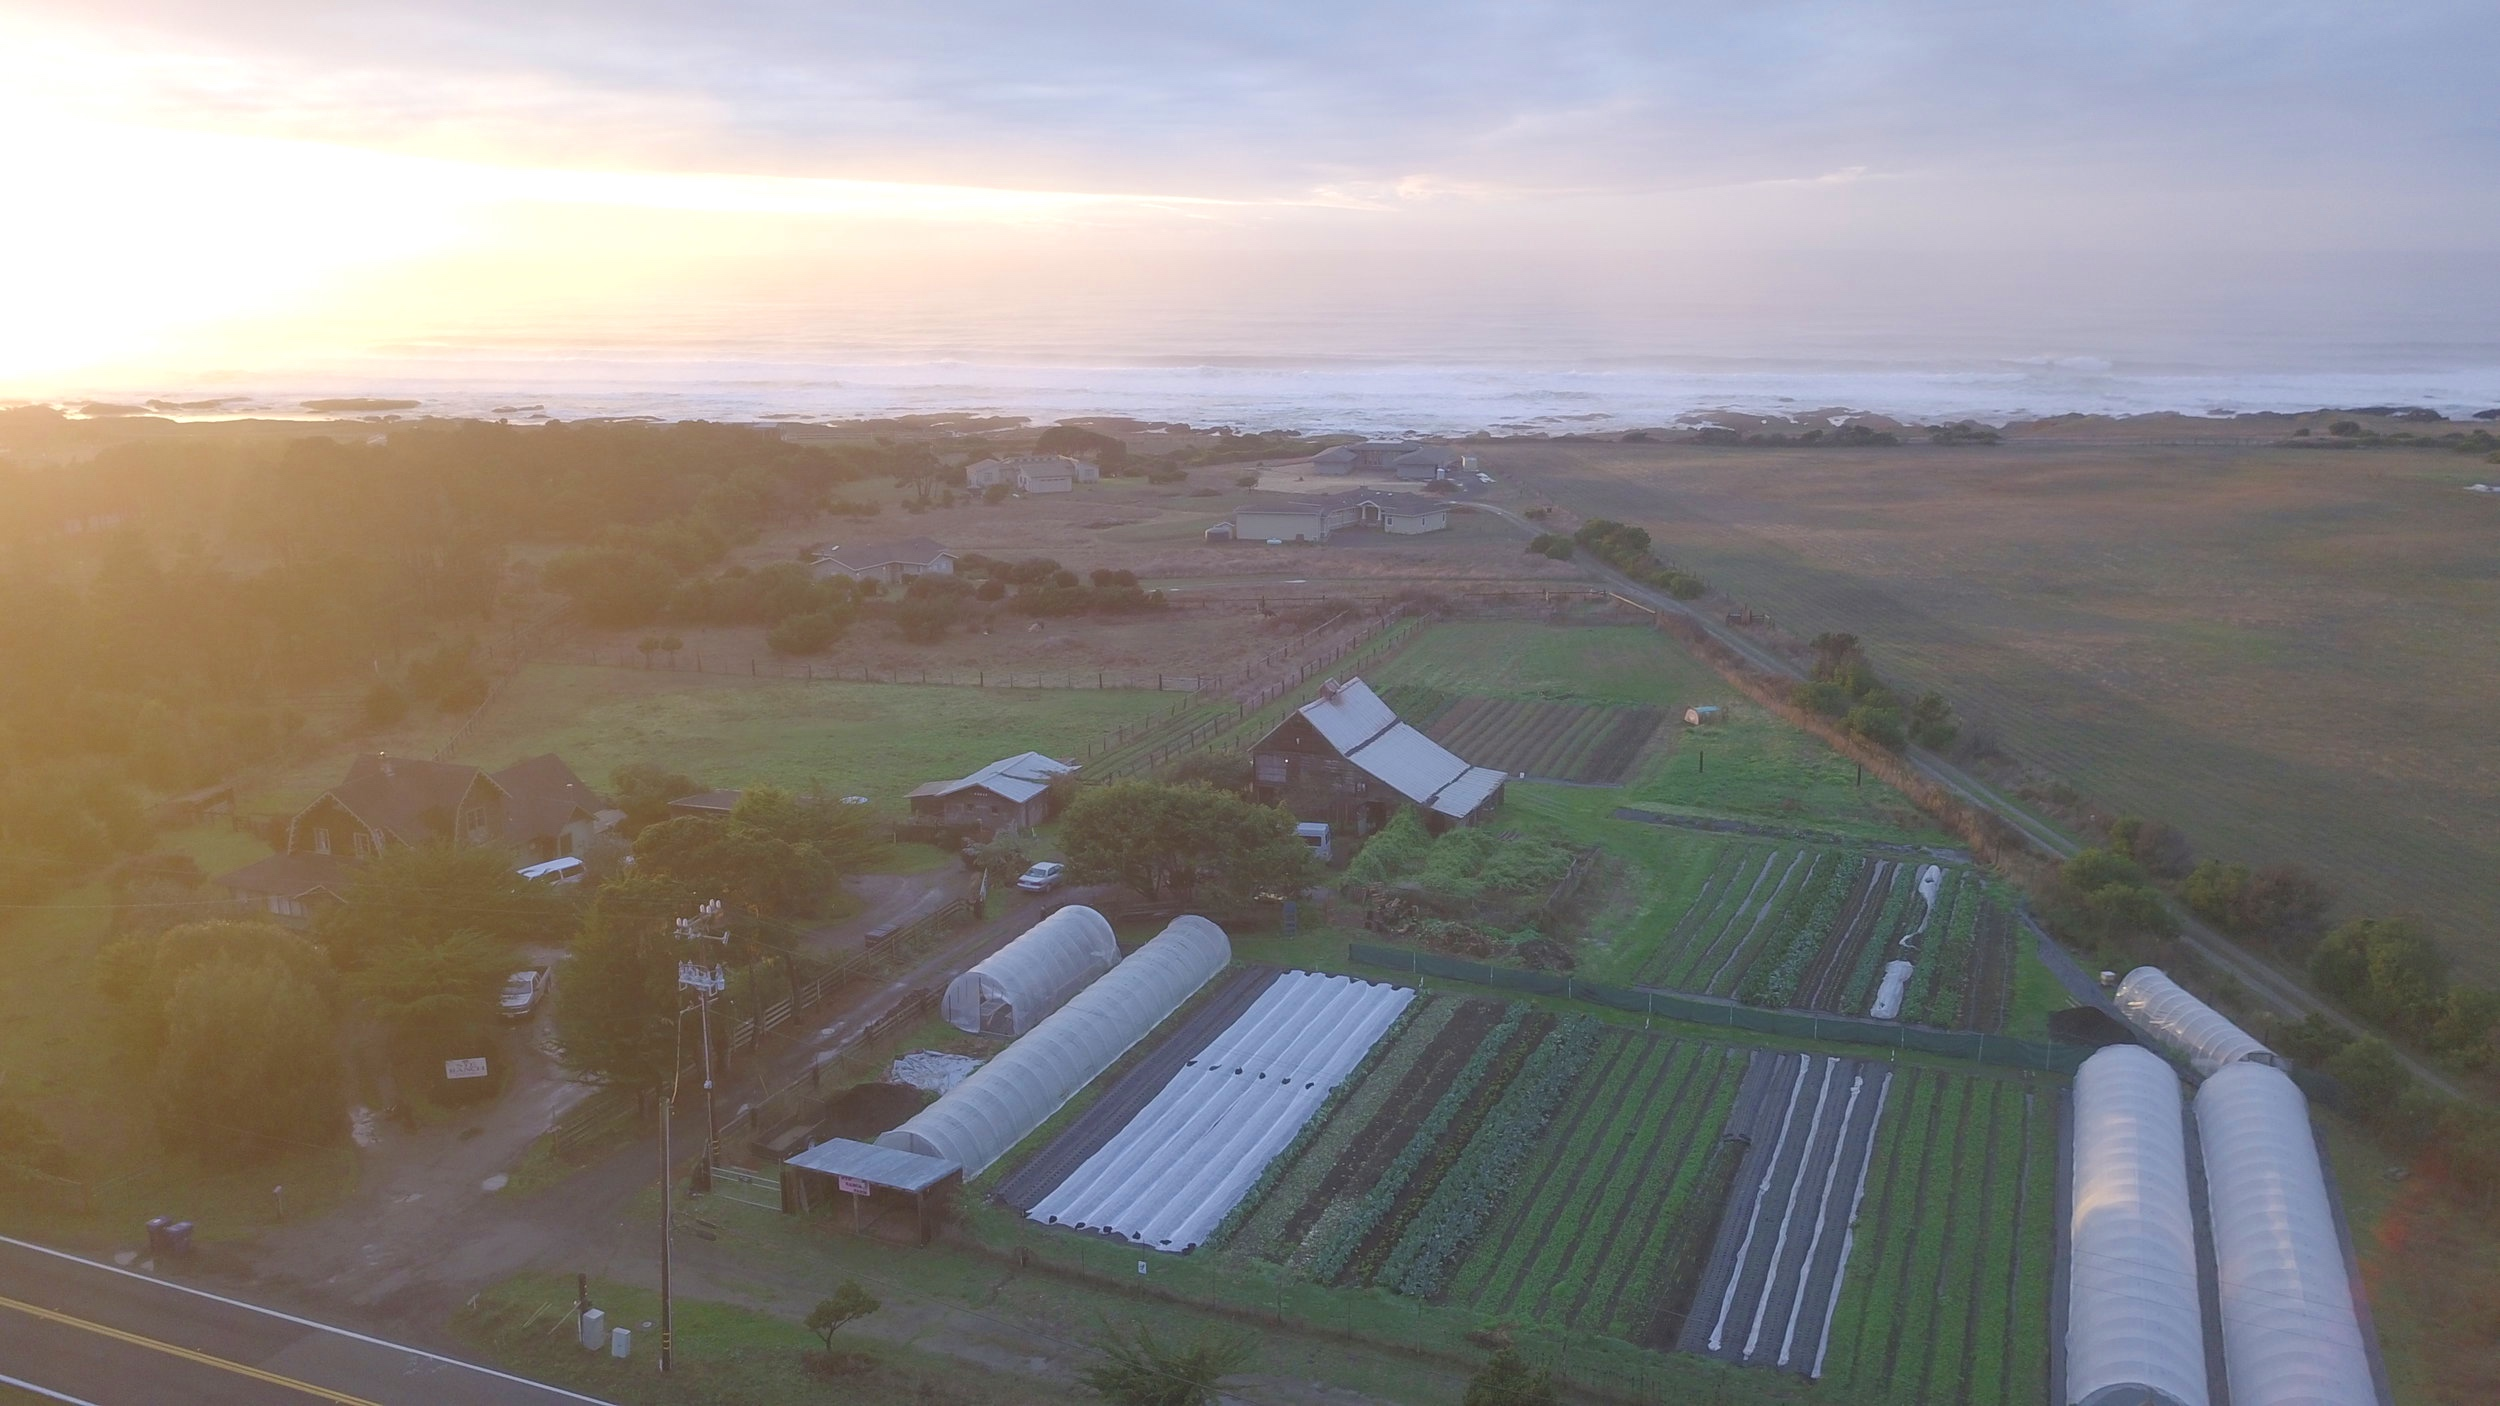 farm stand in the bottom middle of photo.  23300 N. HWY 1 Fort Bragg, CA 95437